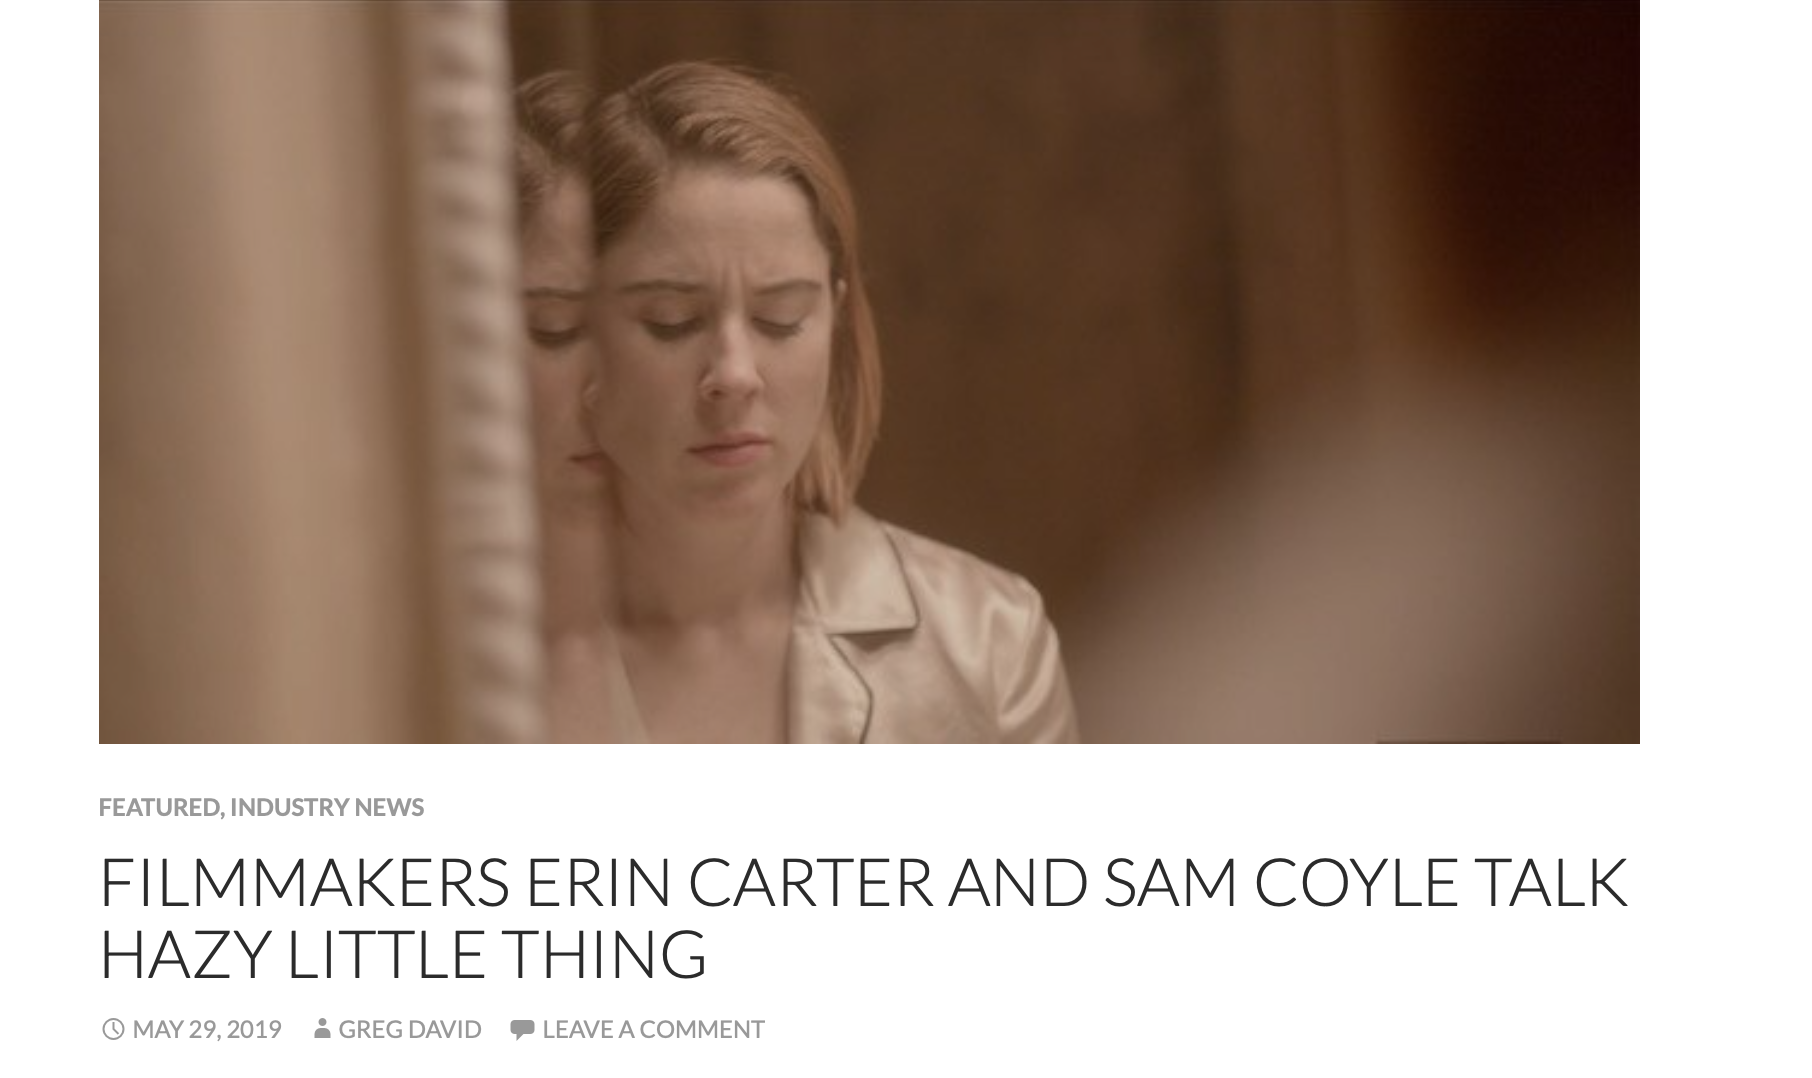 TV, Eh? sits down with Coyle and Carter to talk about their creative process and their current kickstarter campaign.  Read the article here.   https://www.tv-eh.com/2019/05/29/filmmakers-erin-carter-and-sam-coyle-talk-hazy-little-thing/